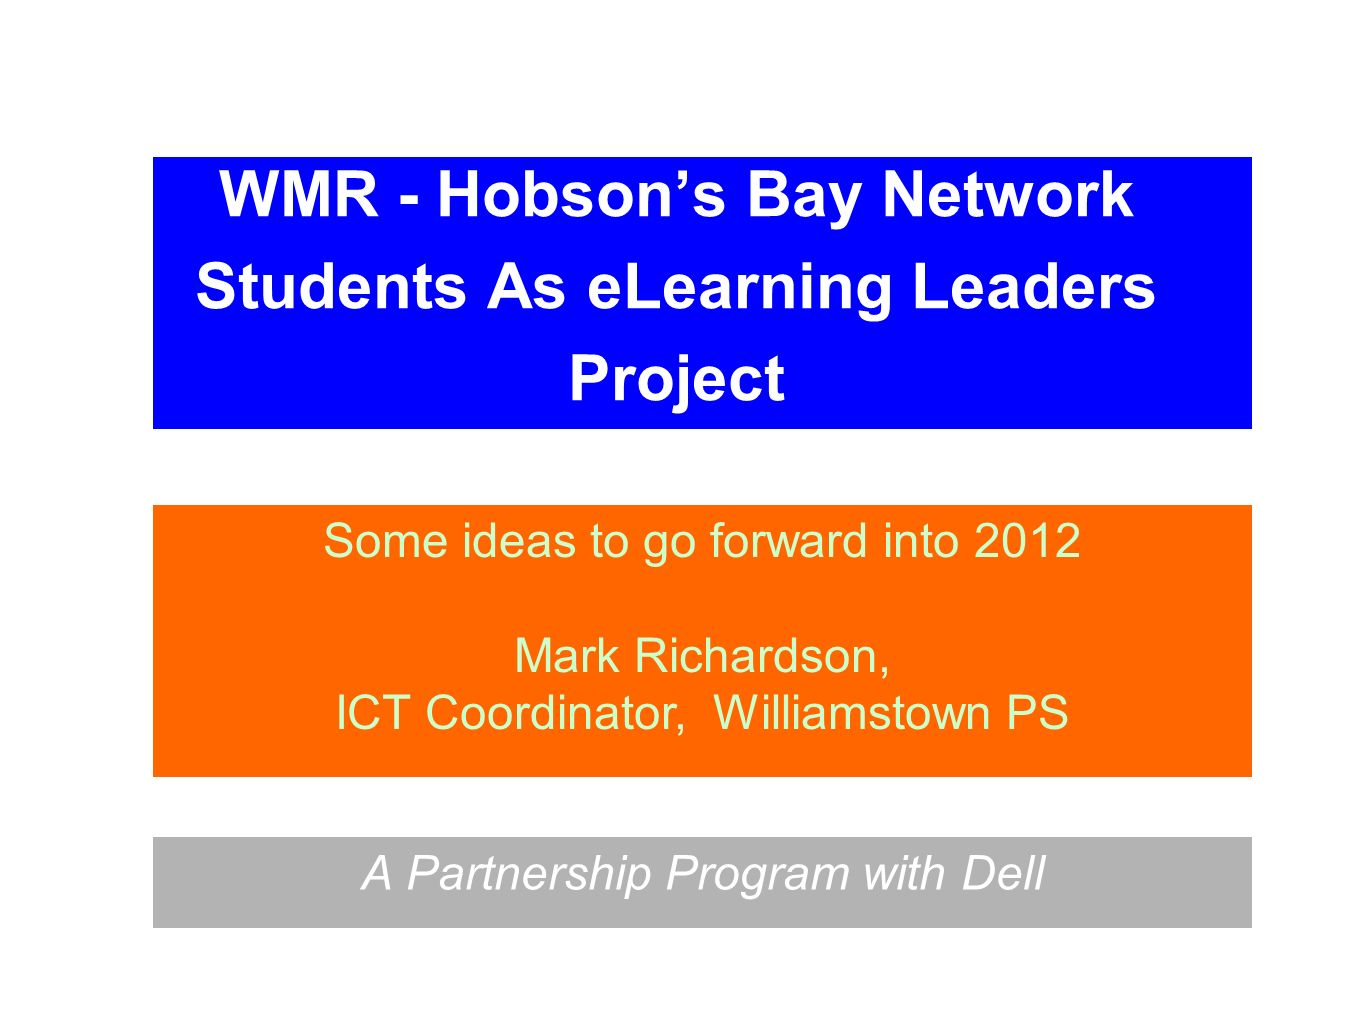 WMR - Hobsons Bay Network Students As eLearning Leaders Project A Partnership Program with Dell Some ideas to go forward into 2012 Mark Richardson, IC